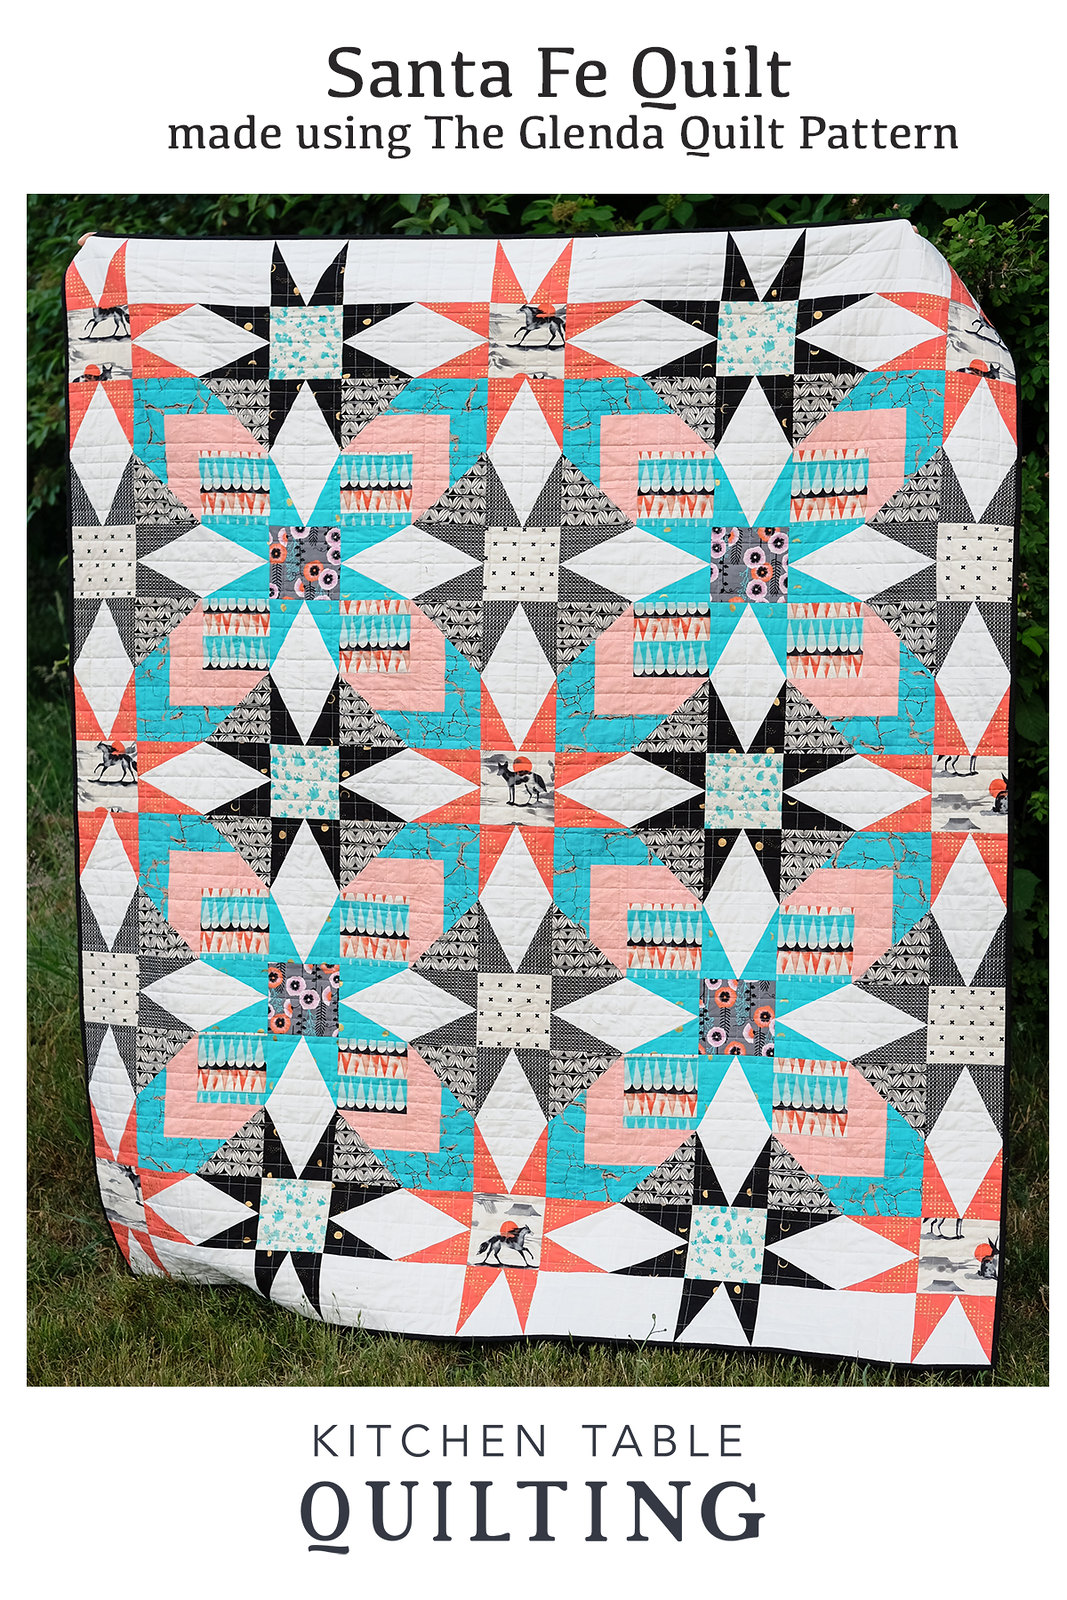 Santa Fe Quilt - Made Using the Glenda Quilt Pattern by Kitchen Table Quilting